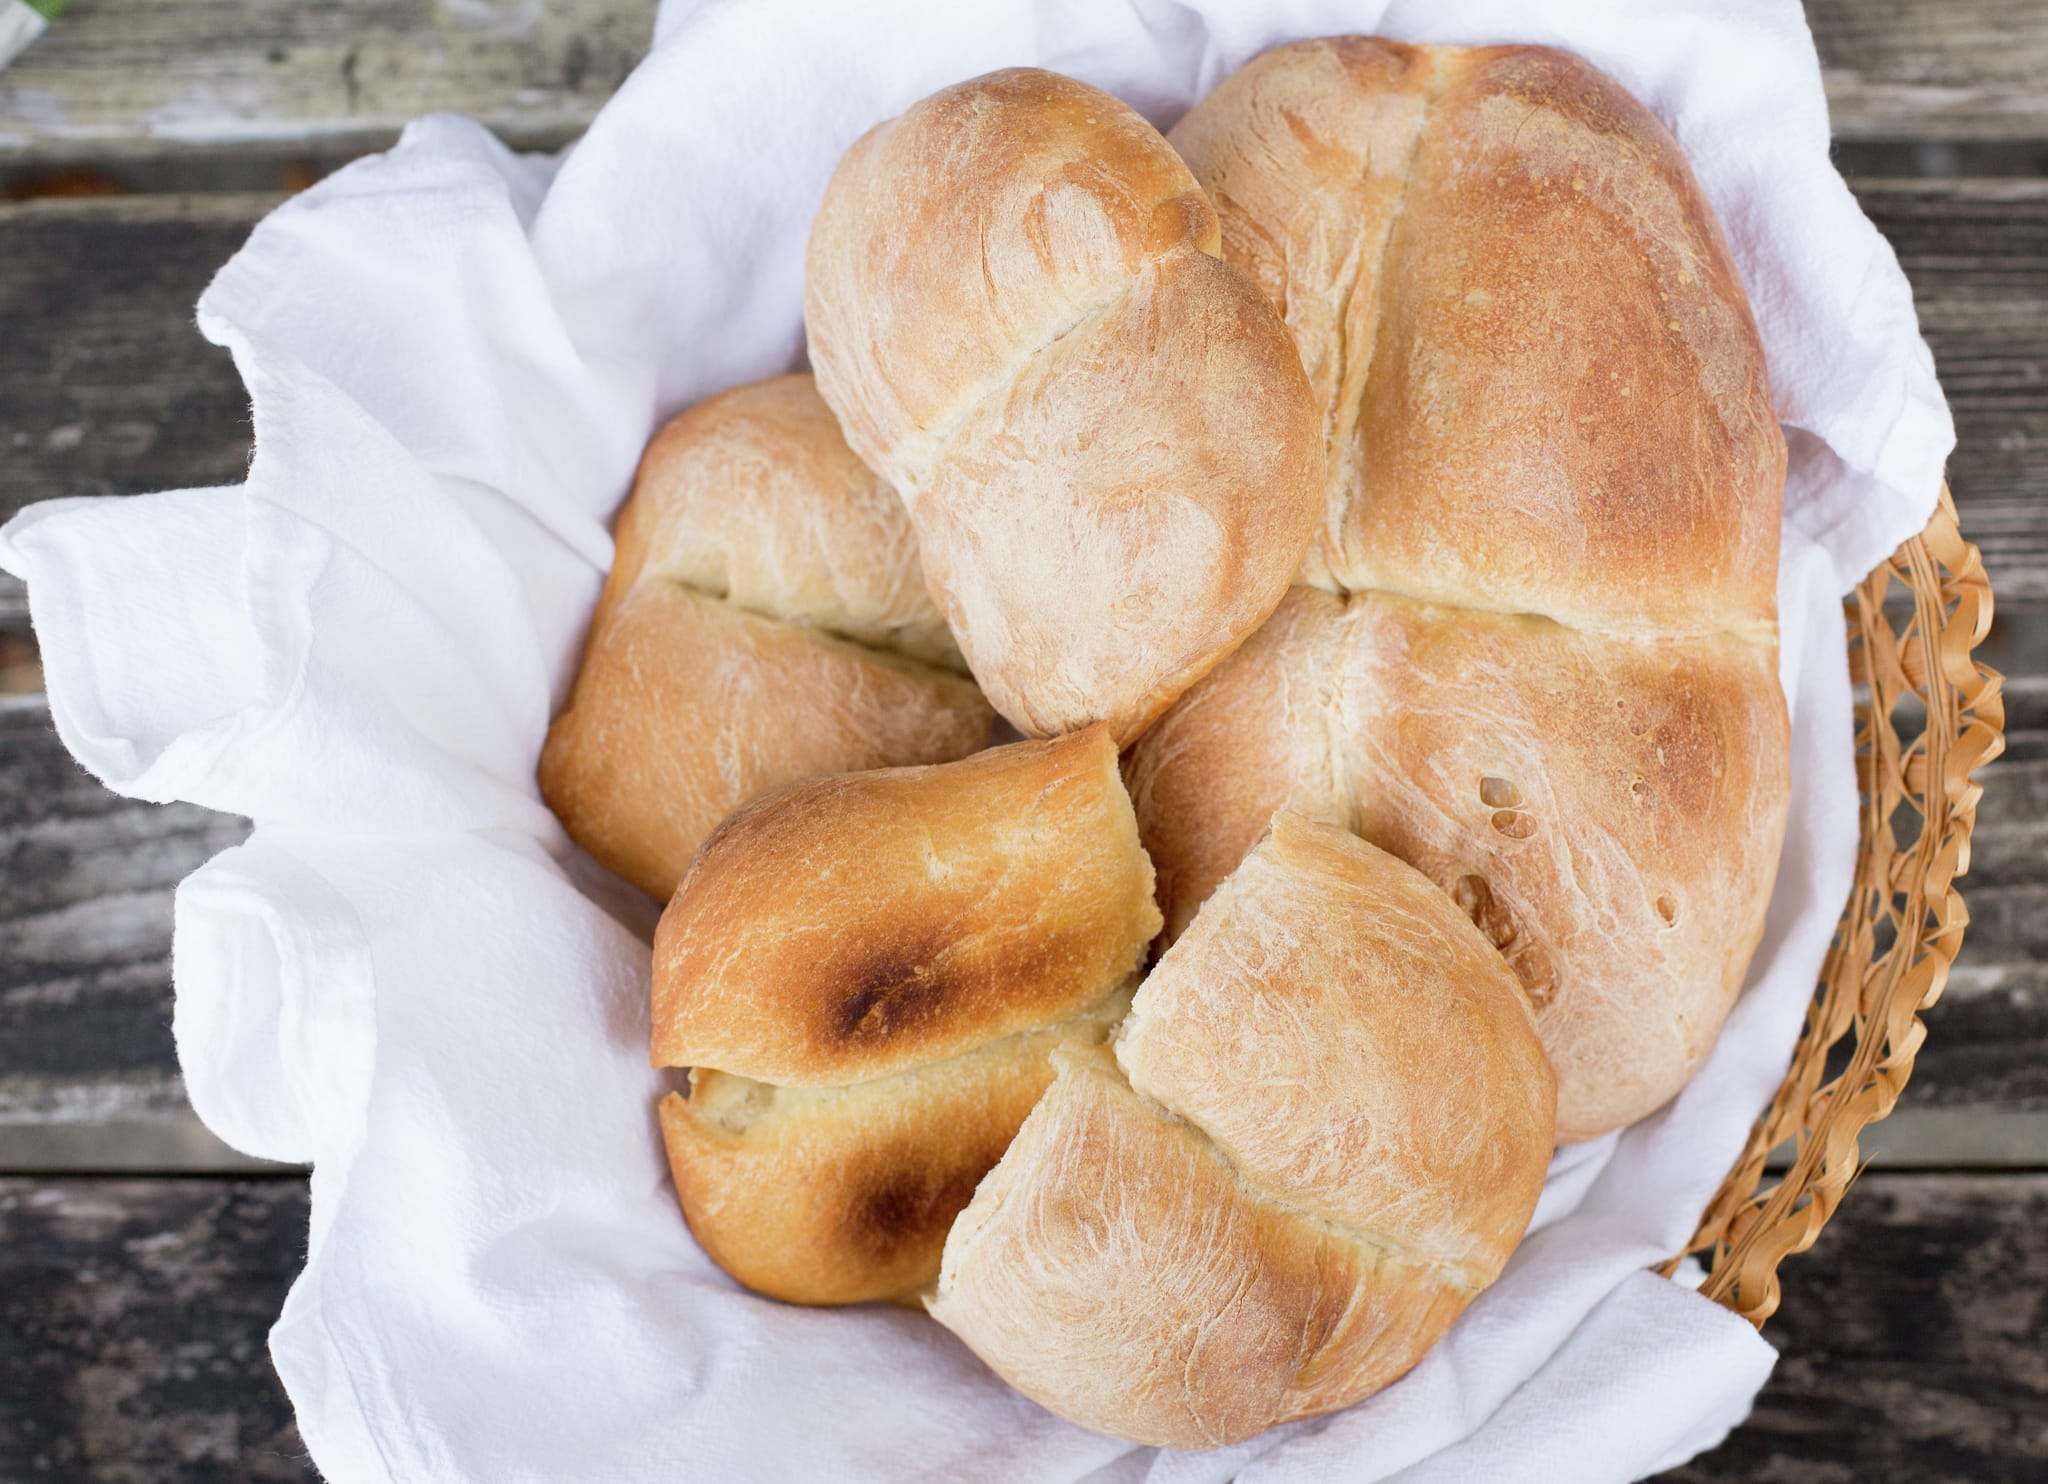 Marraquetas Chilean Bread